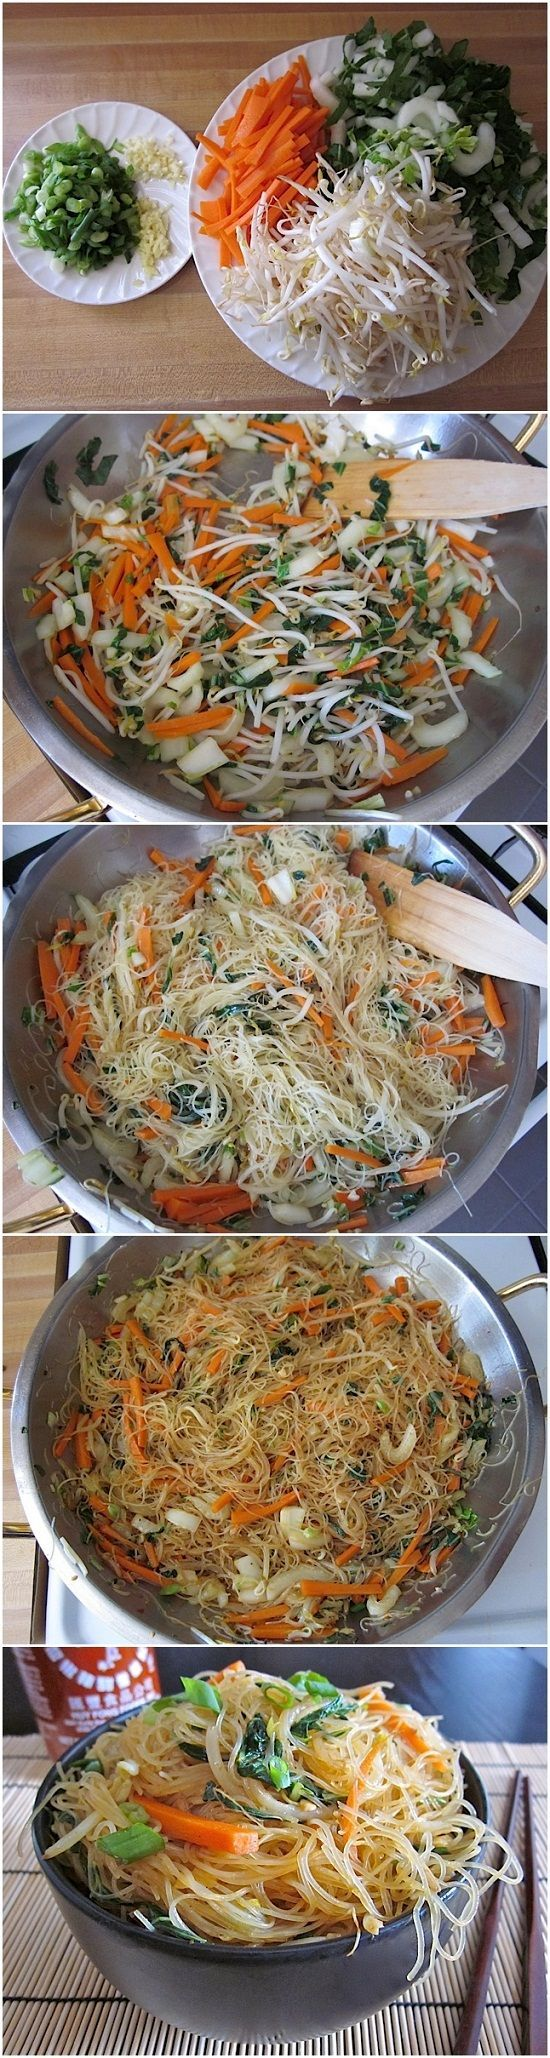 Singapore Noodles Recipe my favorite food stir fry noodles